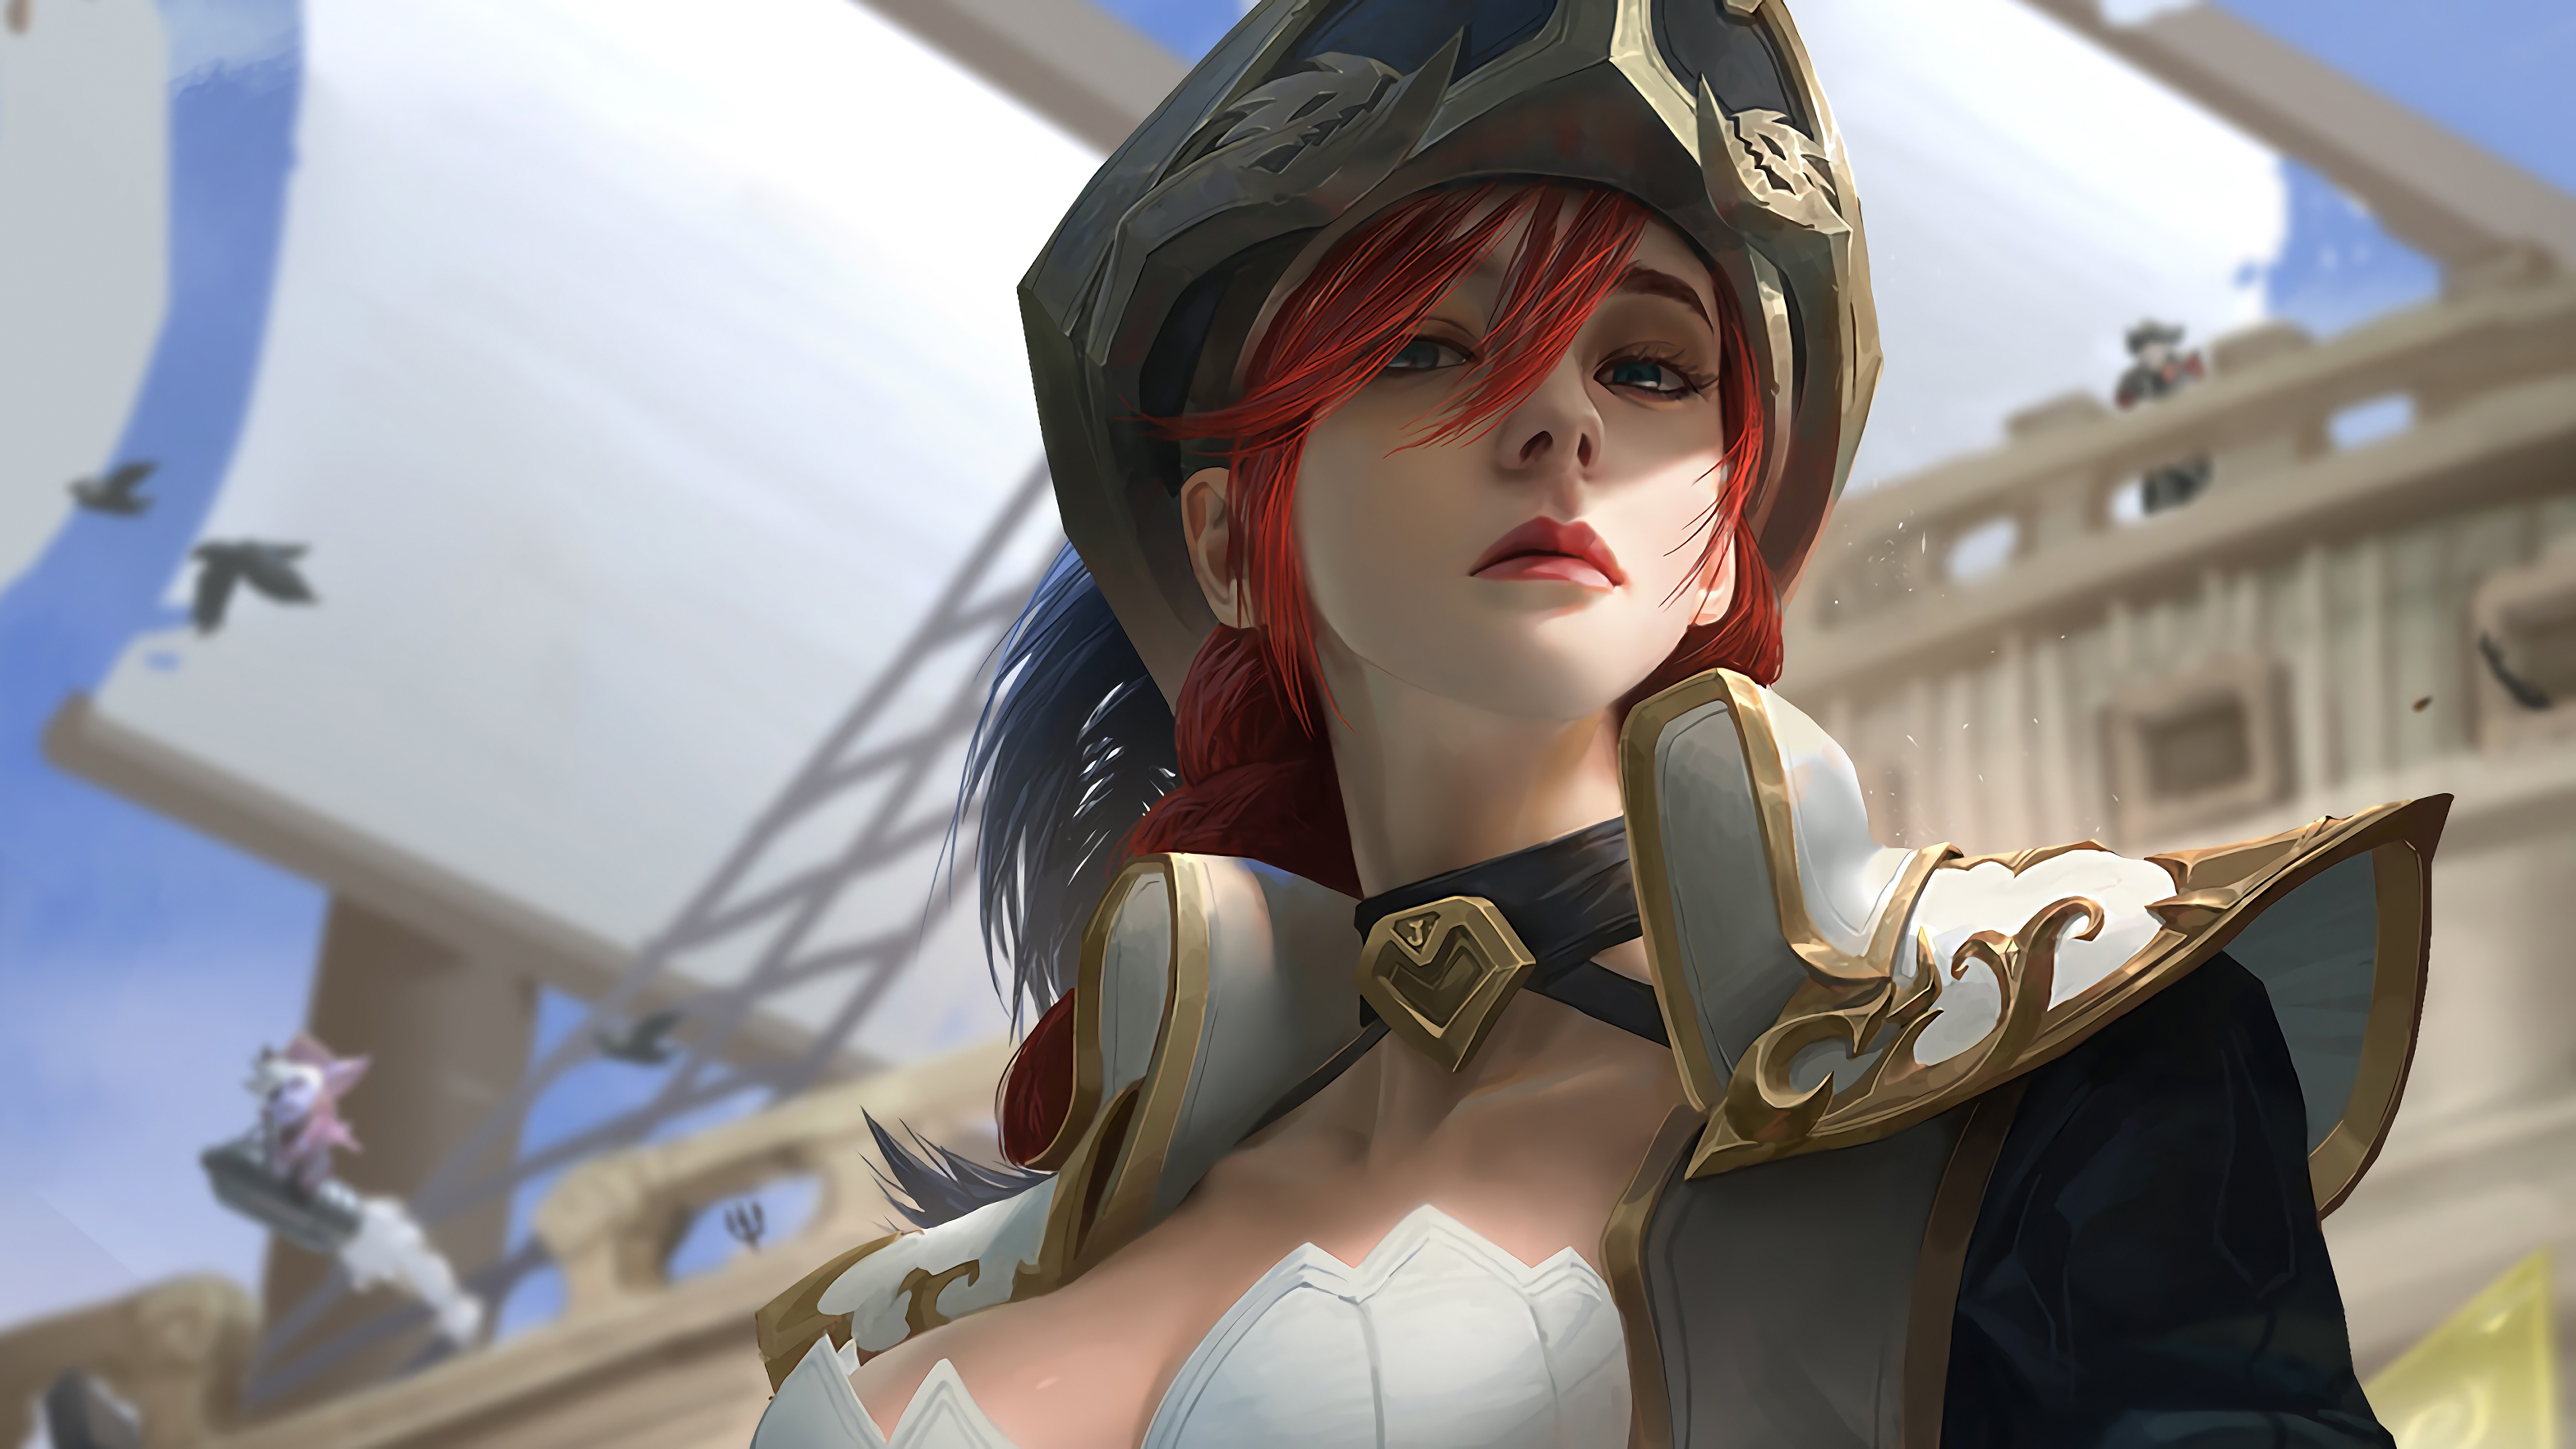 miss fortune league of legends 4k 1538343990 - Miss Fortune League Of Legends 4k - league of legends wallpapers, hd-wallpapers, games wallpapers, 4k-wallpapers